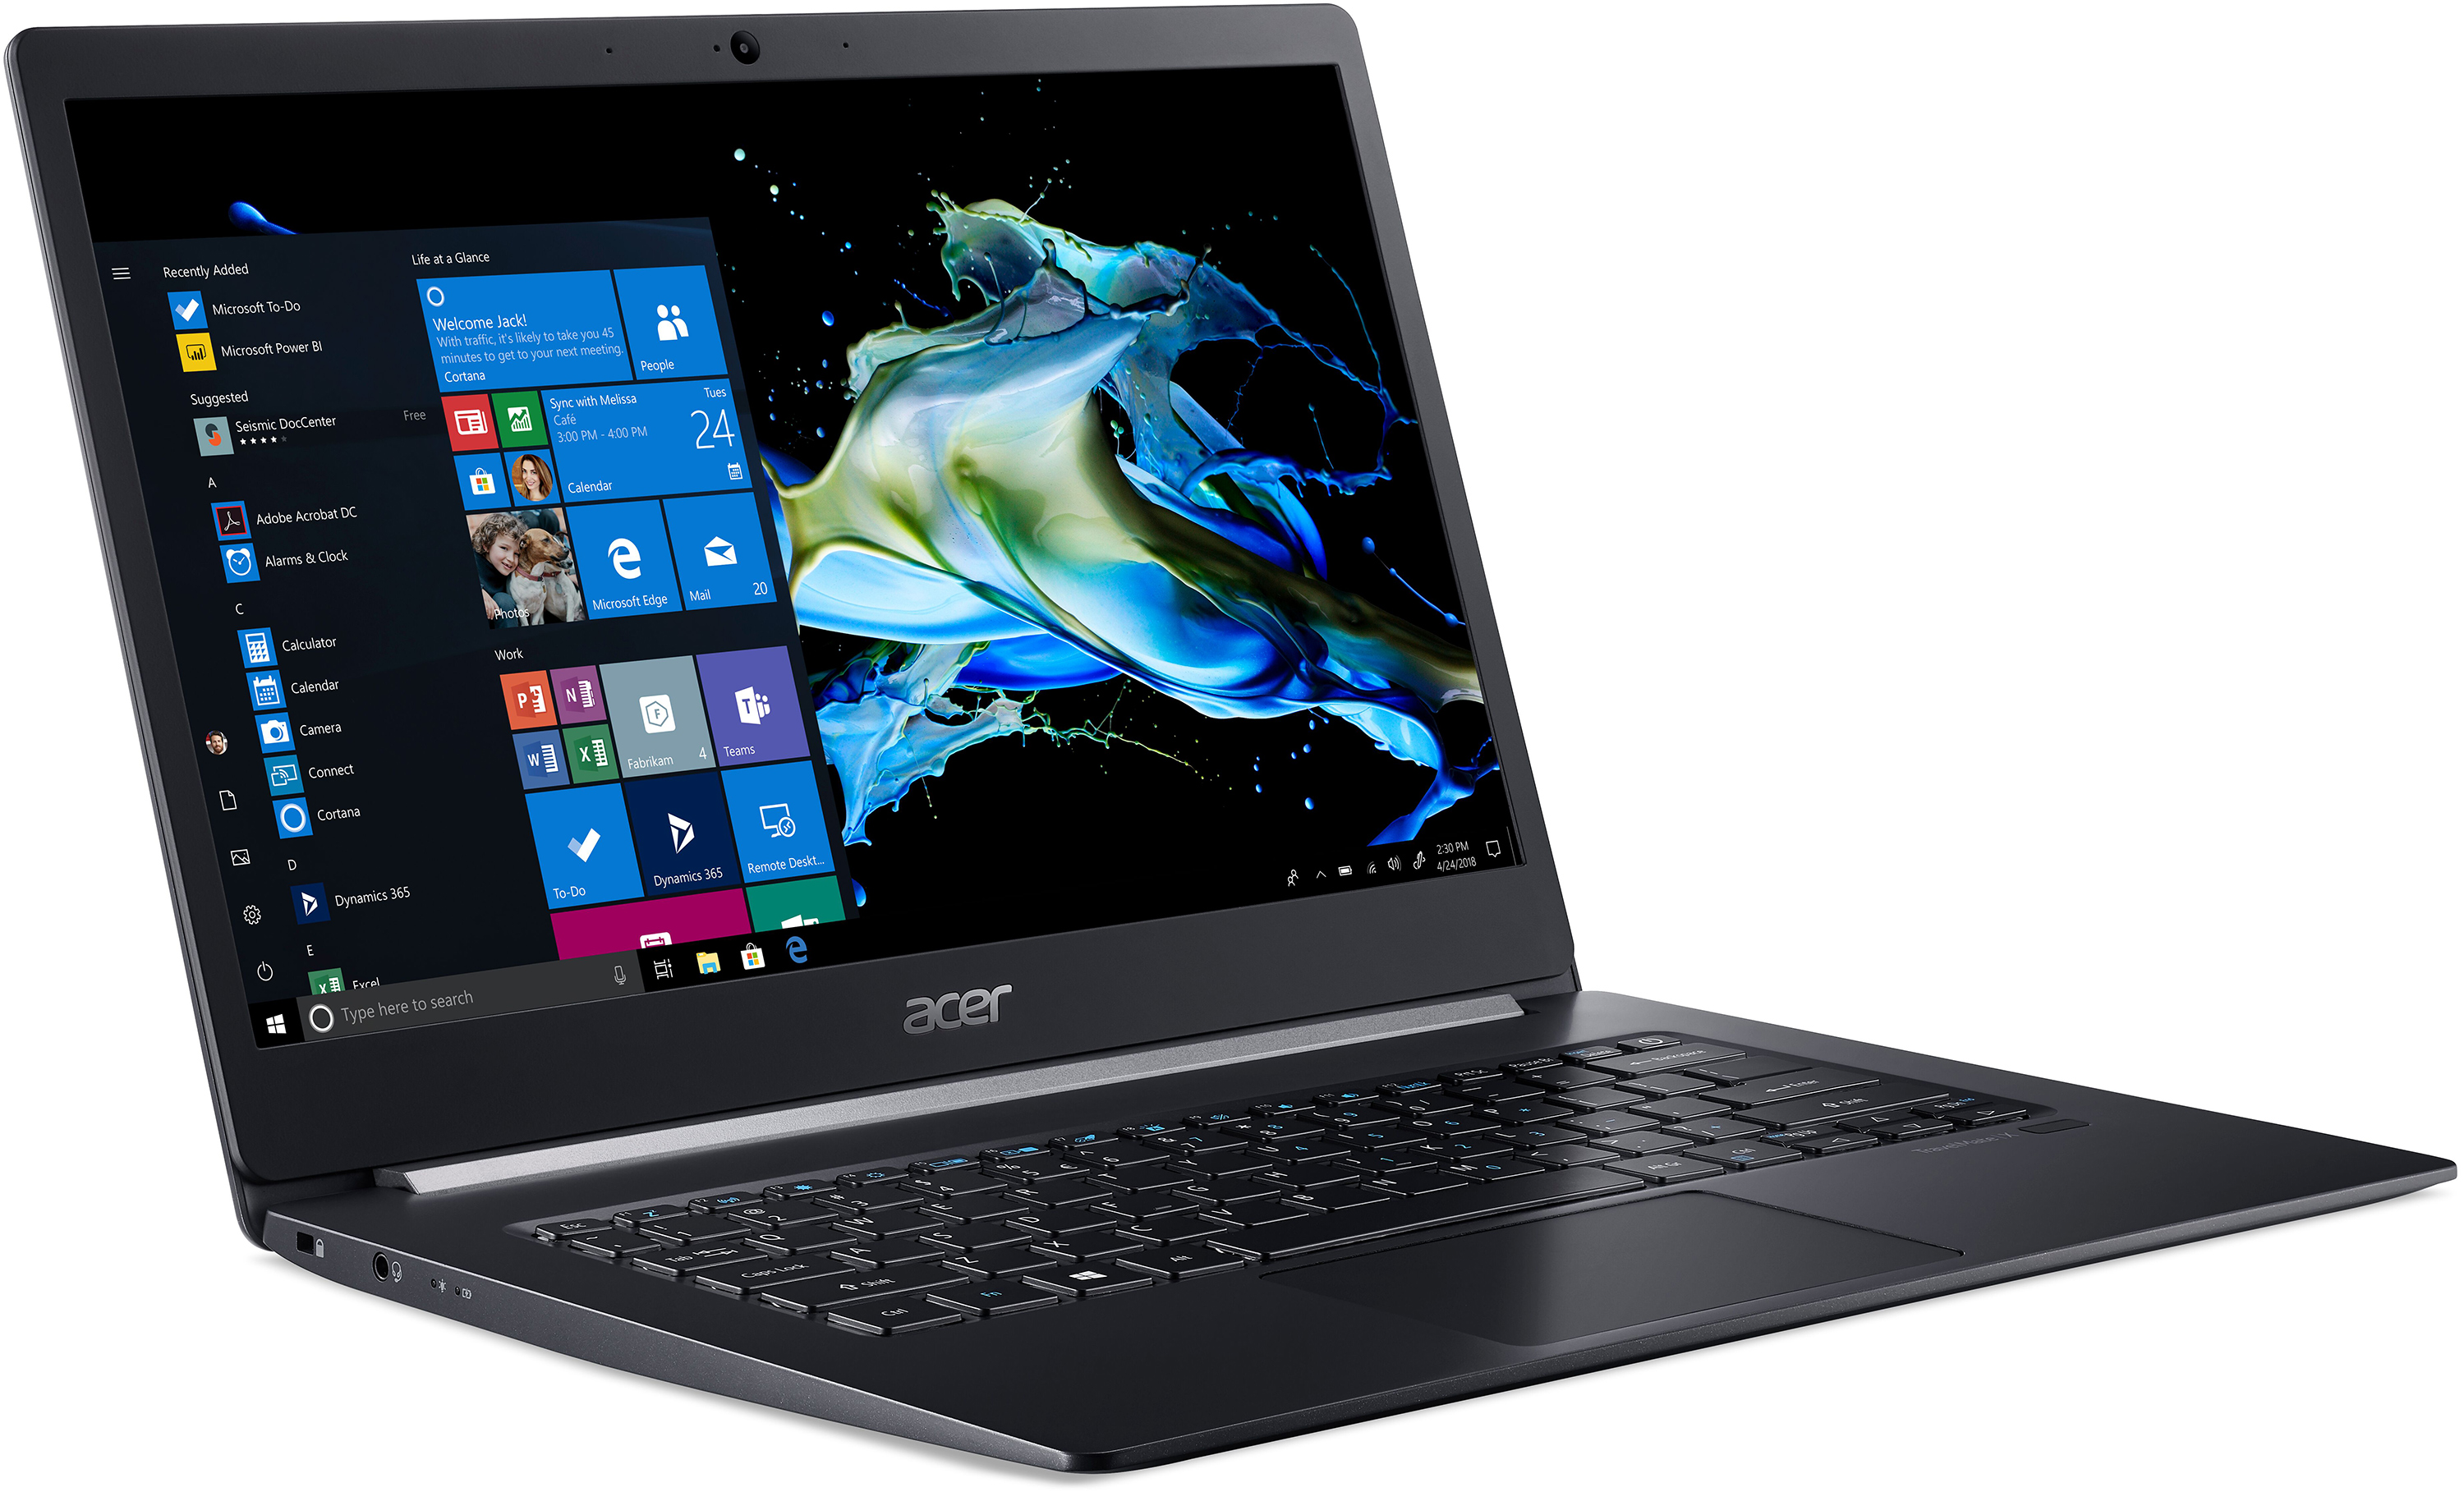 Acer TravelMate X514-51 Intel RST Drivers for Windows